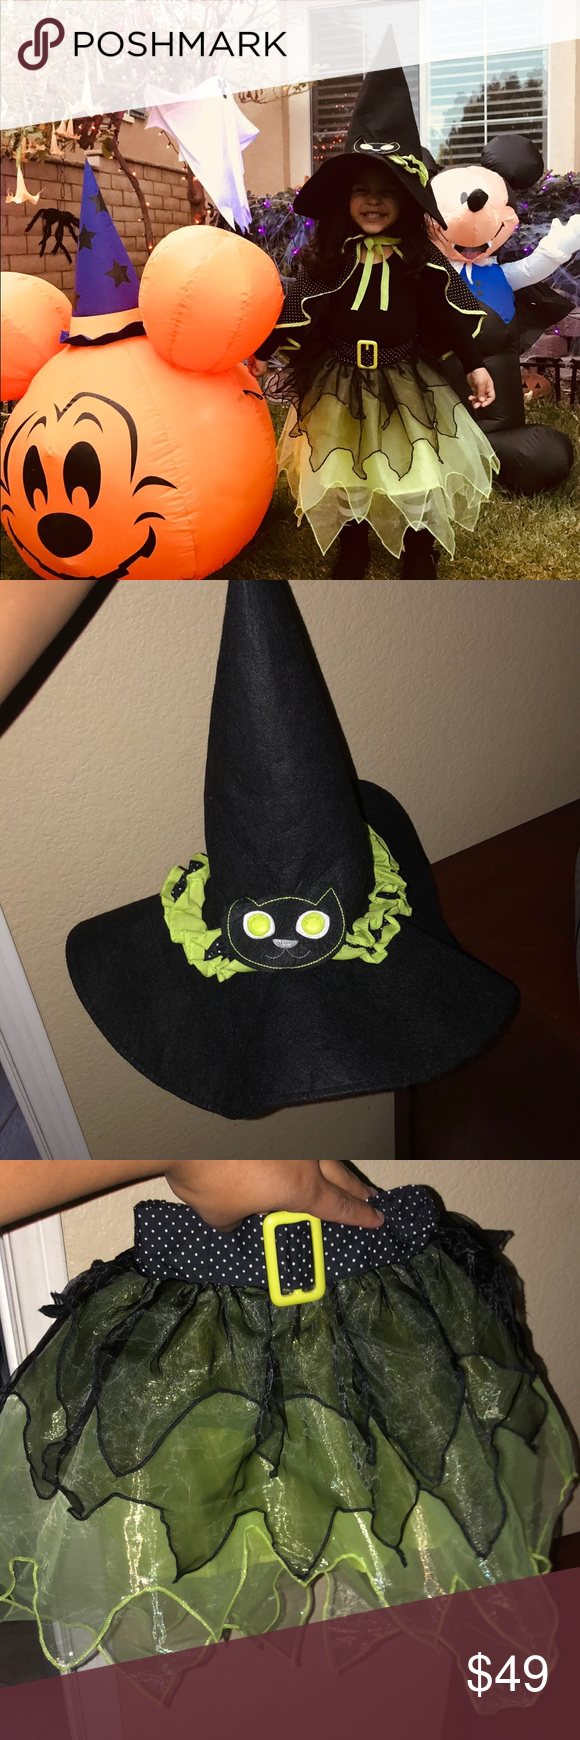 Witch costume Pottery barn kids costume, Kids costumes